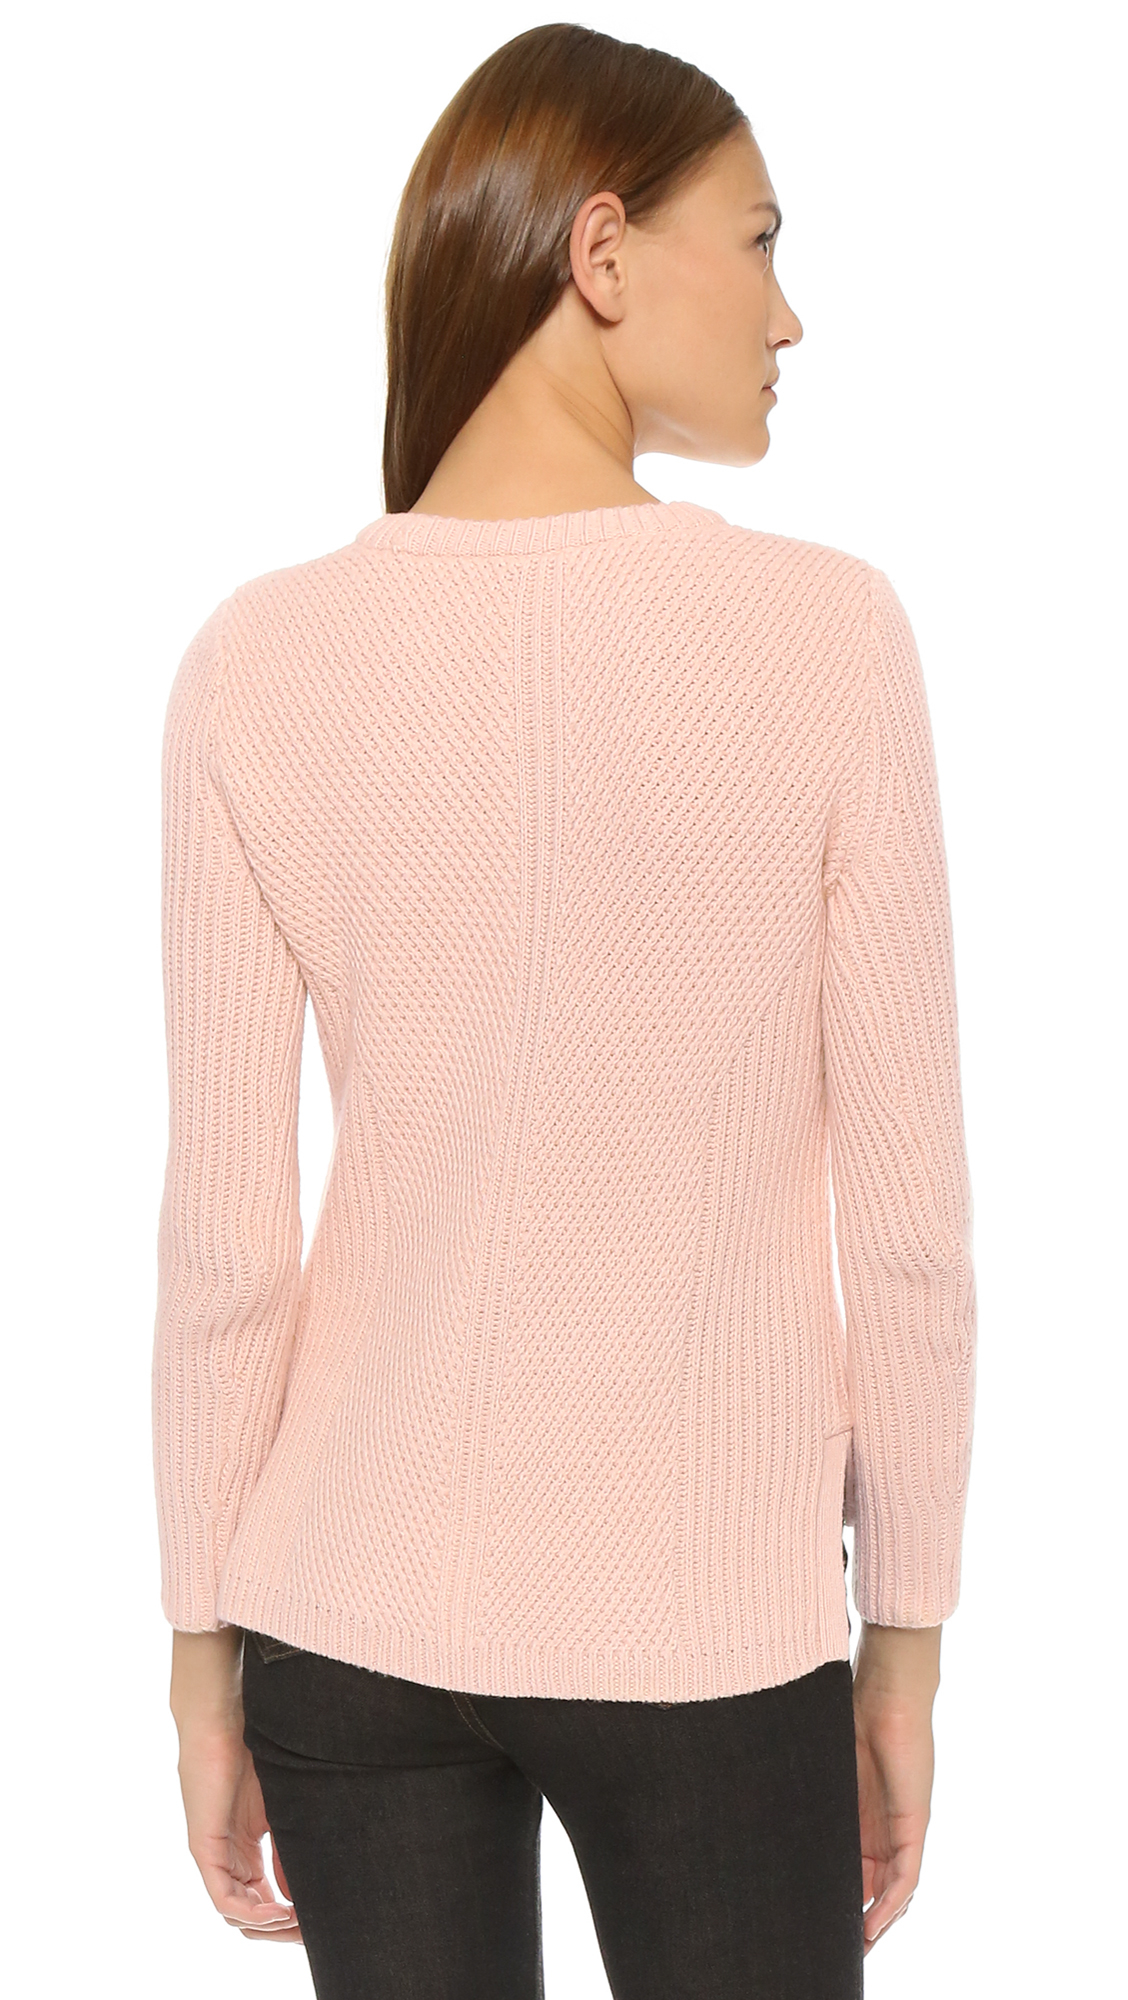 Madewell Sophia Ribbed Sweater in Pink | Lyst